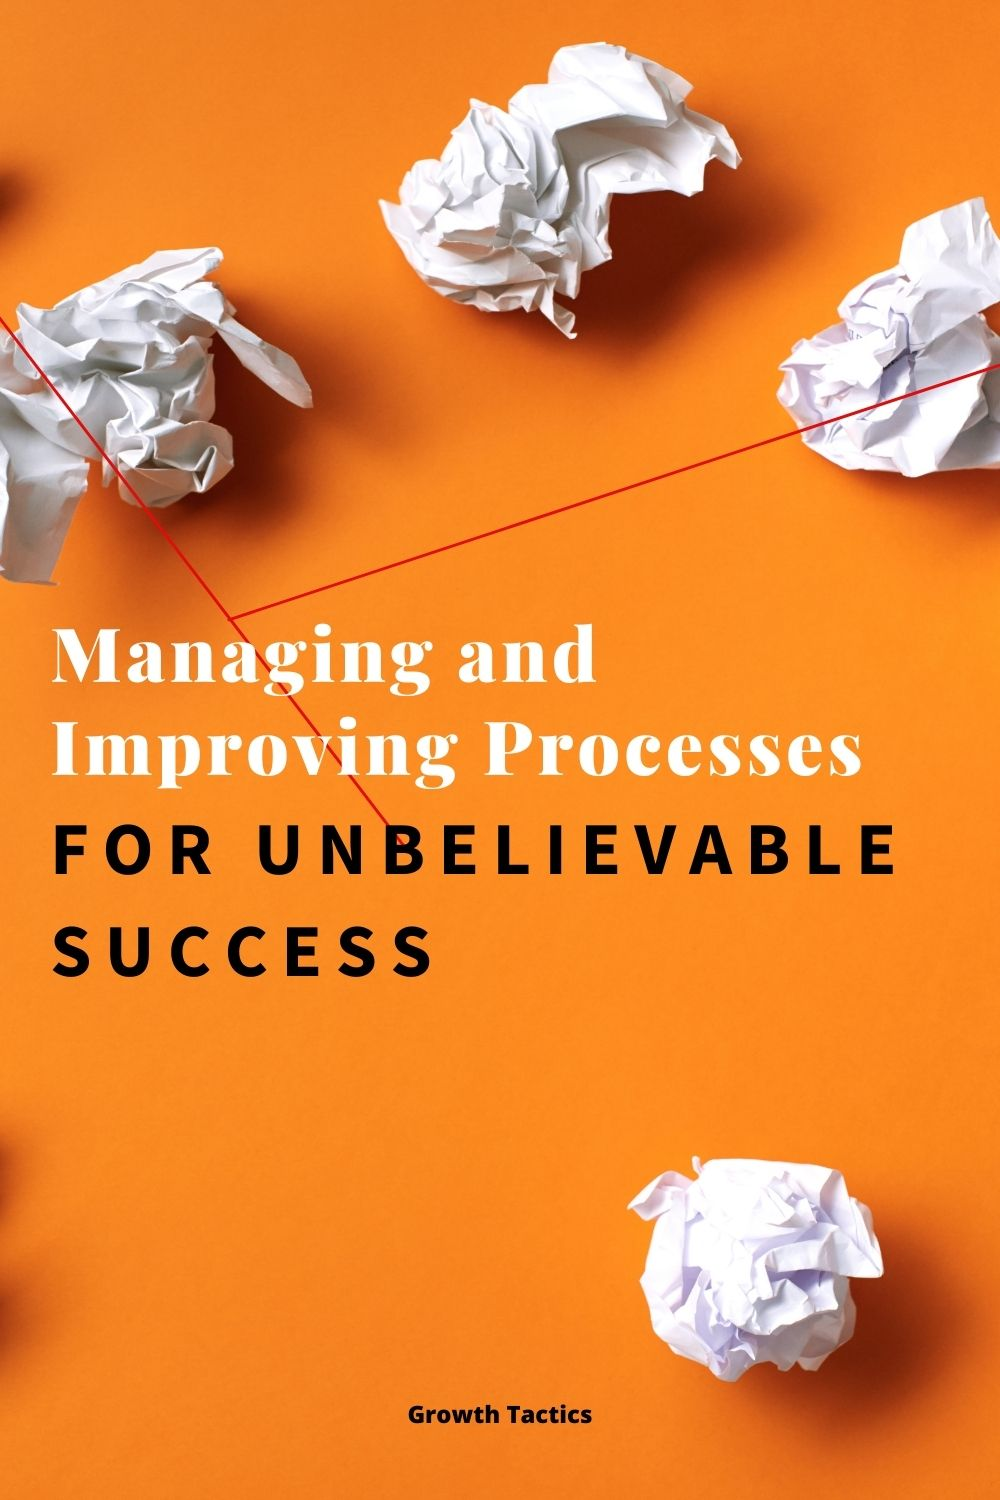 Pinterest grahic for Managing And Improving Processes For Unbelievably Successful Operations article.